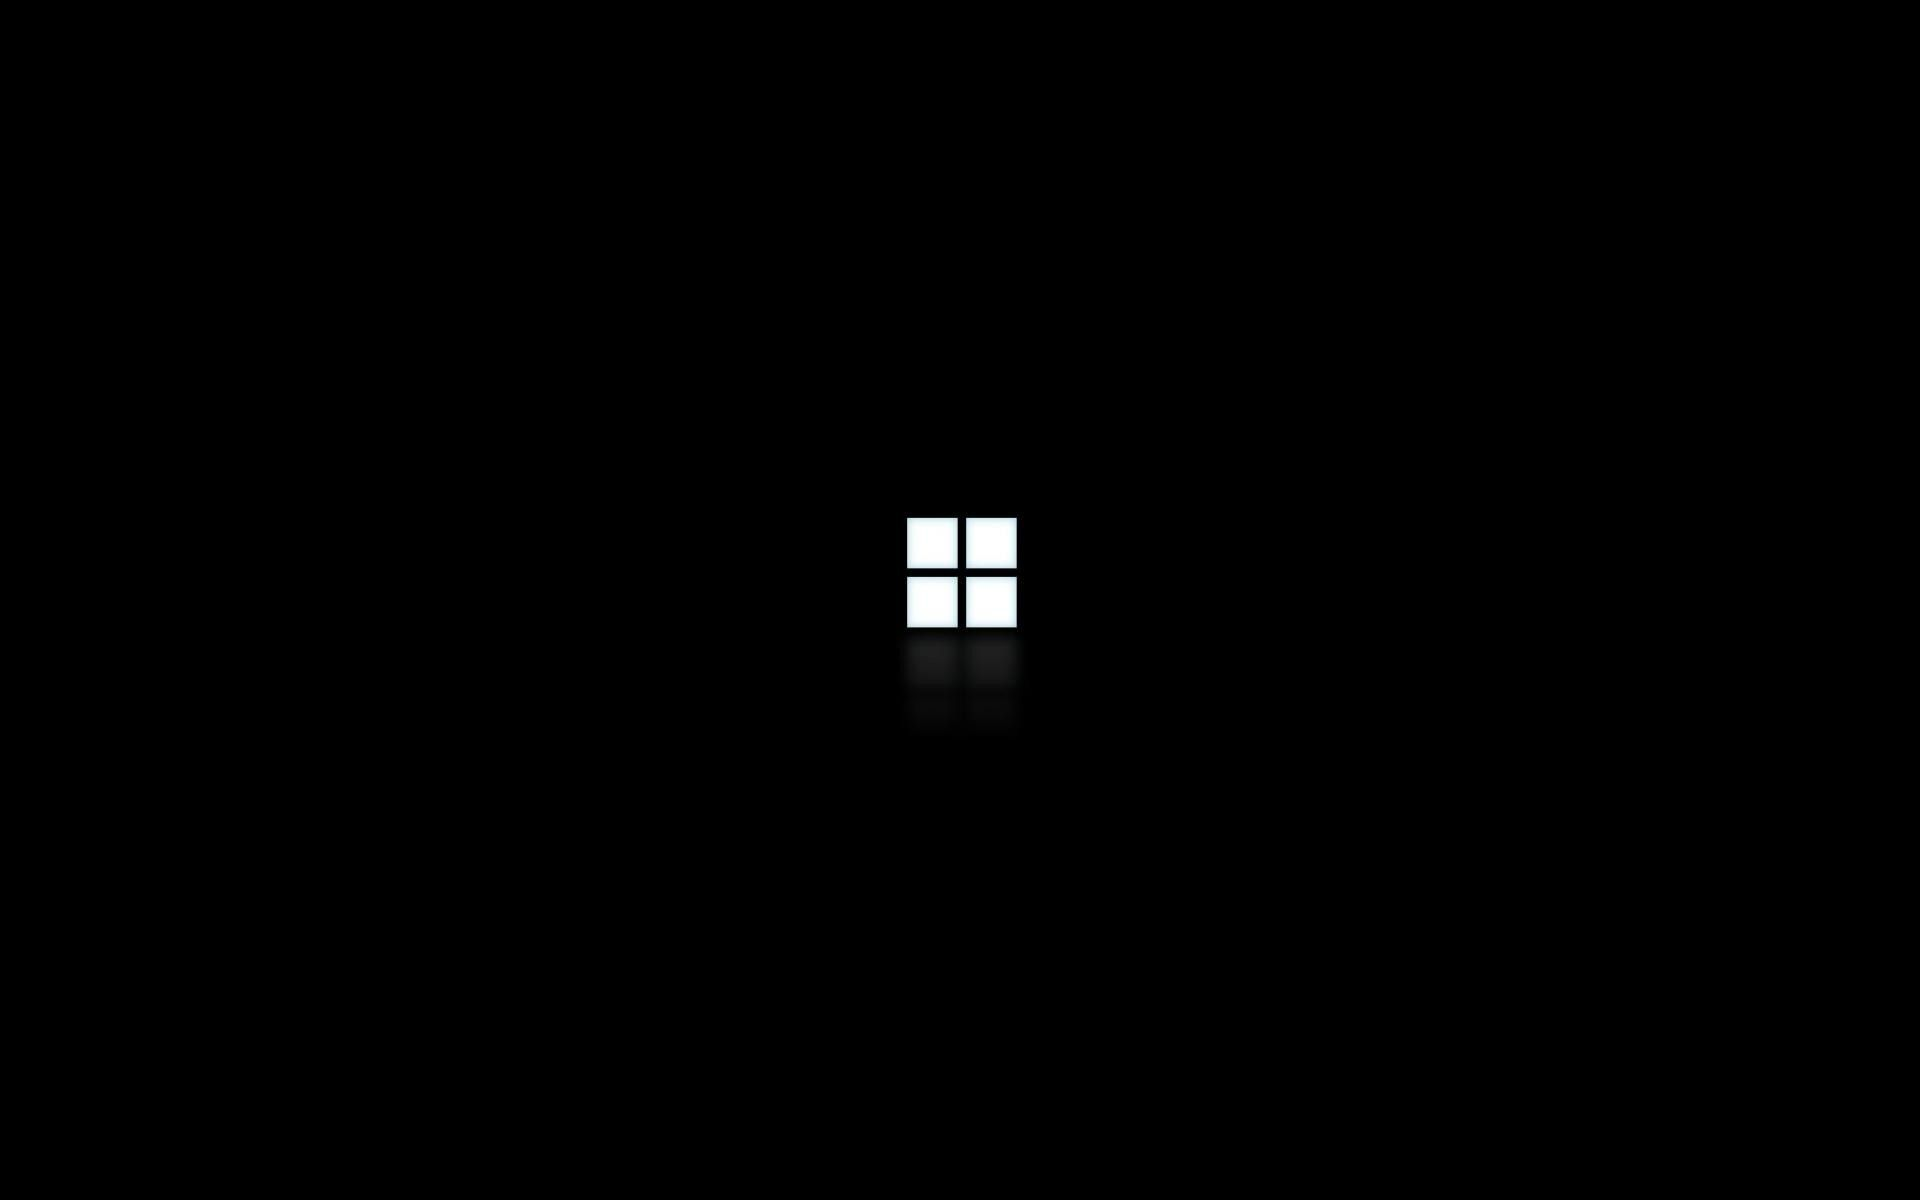 1920x1200 Windows 10 Minimal Wallpaper WallpaperSafari